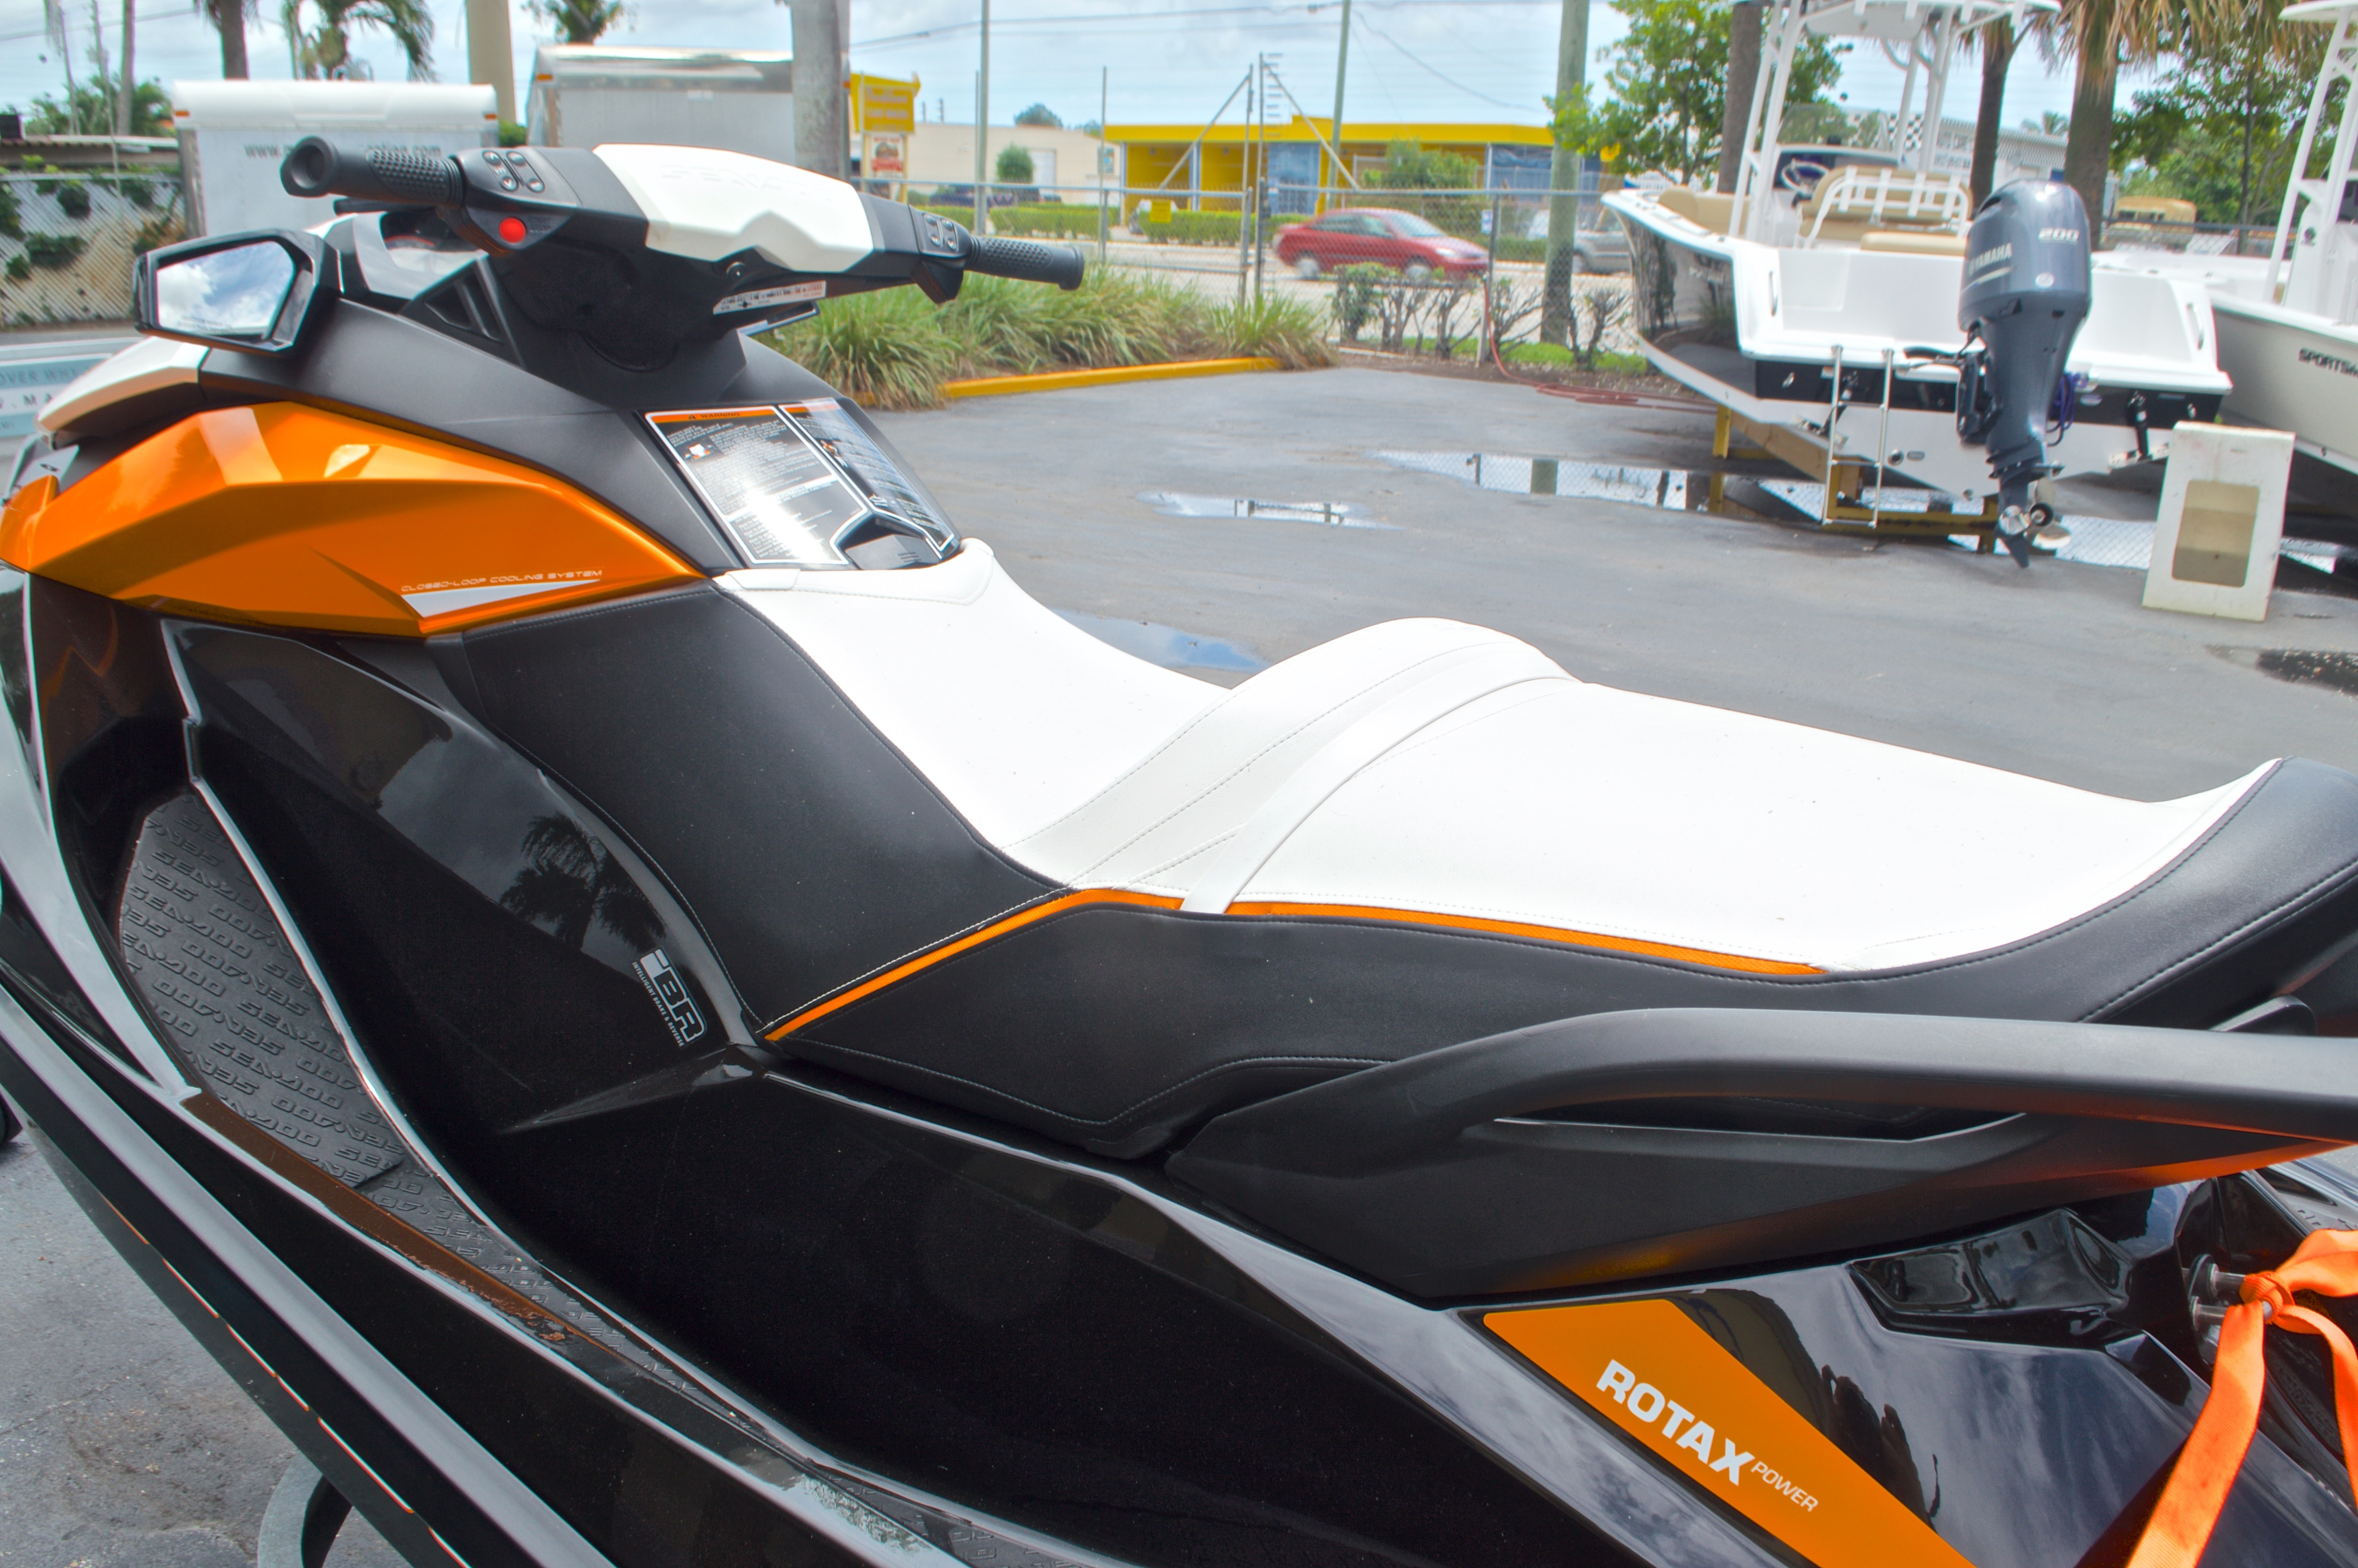 Thumbnail 11 for Used 2014 Sea-Doo GTR 215 boat for sale in West Palm Beach, FL